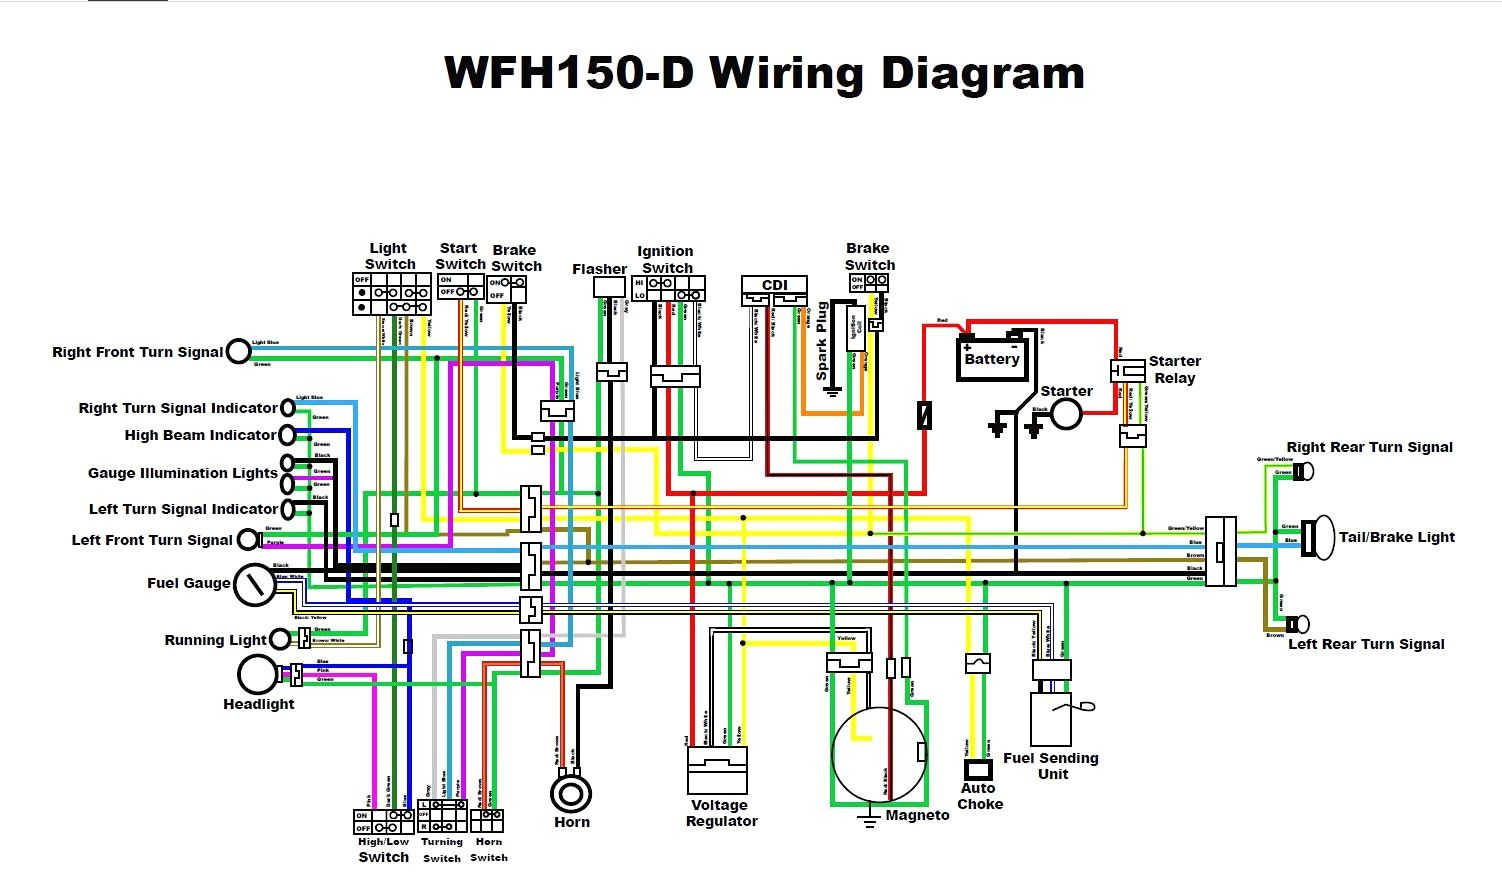 hight resolution of wiring diagram for gy6 150cc scooter wiring diagram home 150cc chinese scooter wiring diagram 150cc scooter wiring diagram